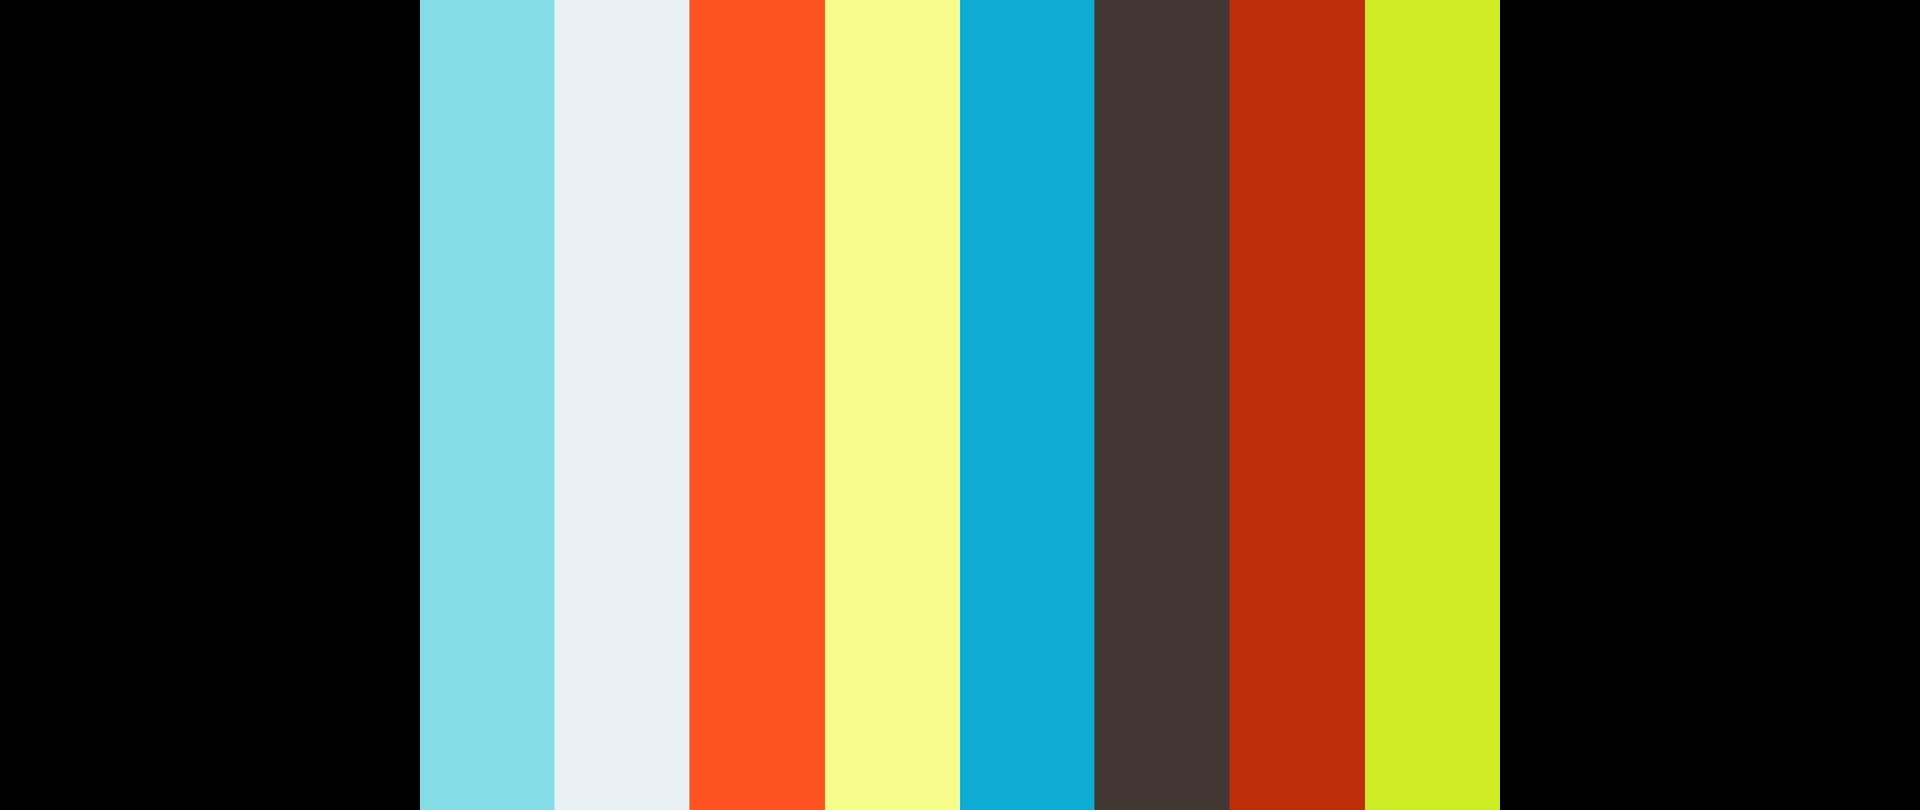 Grace & James Wedding Video Filmed at Mallorca, Spain